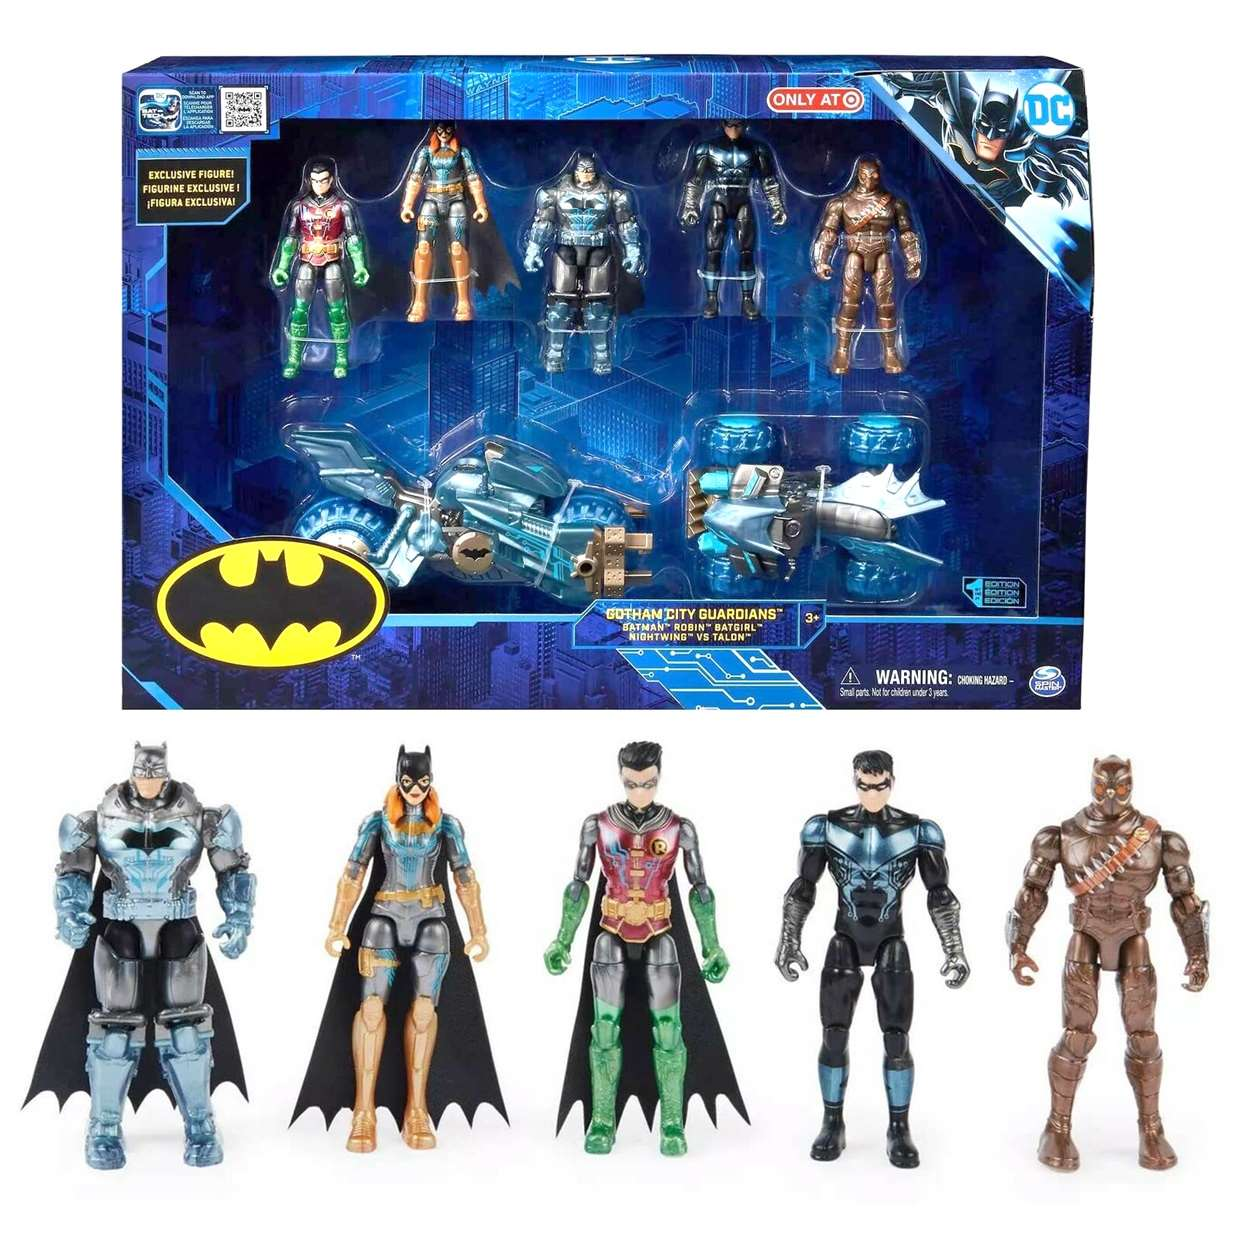 Gotham City Guardians 1St Edition Spina Master Only Target